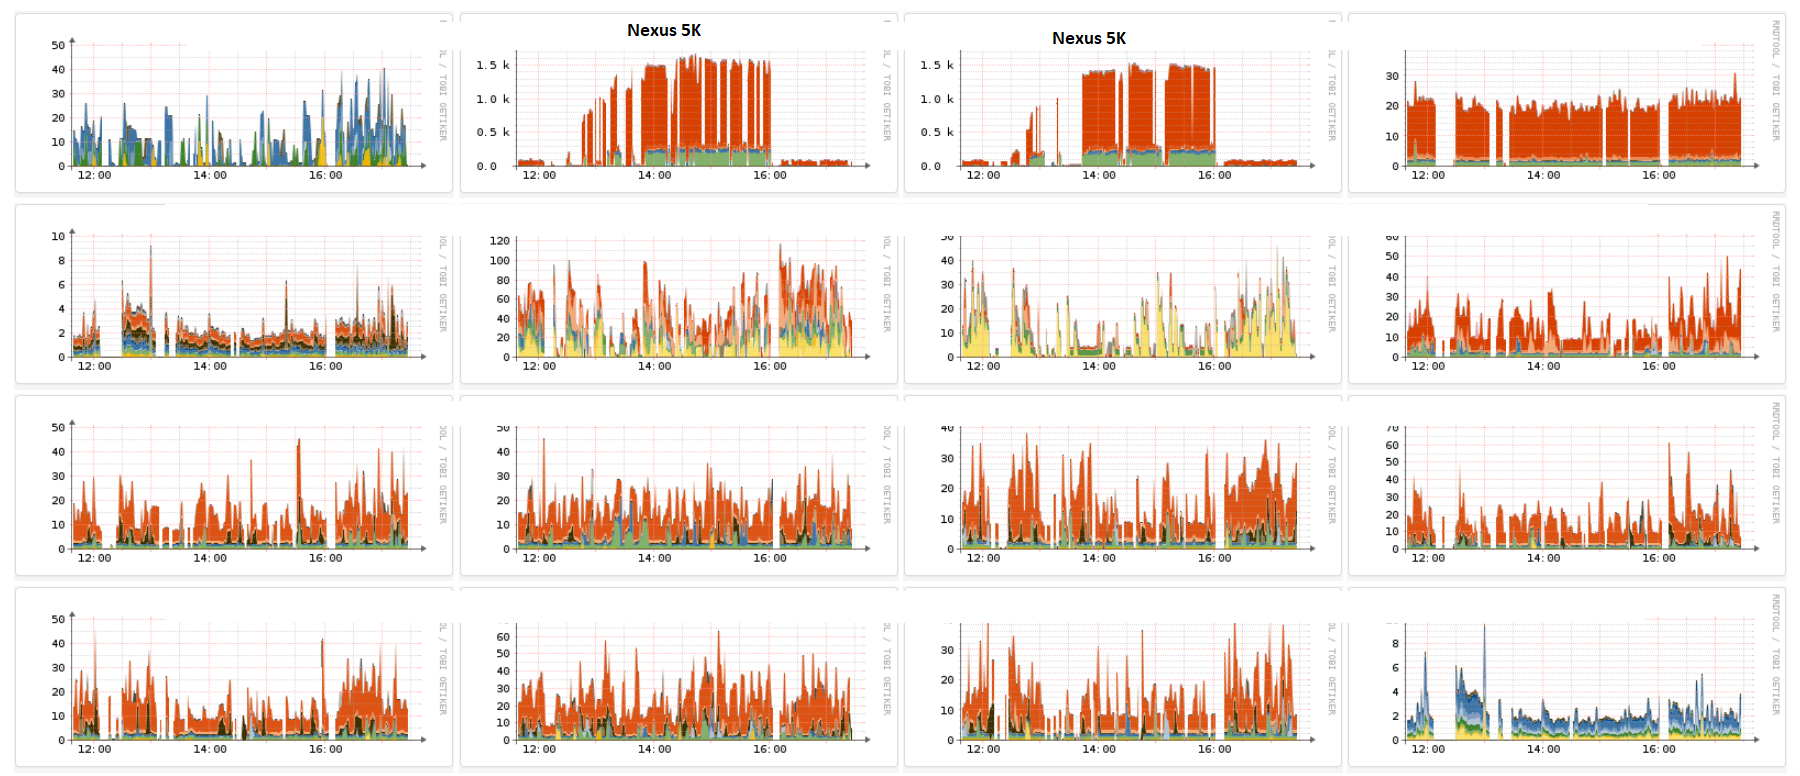 New librenms python poller service is underperforming badly